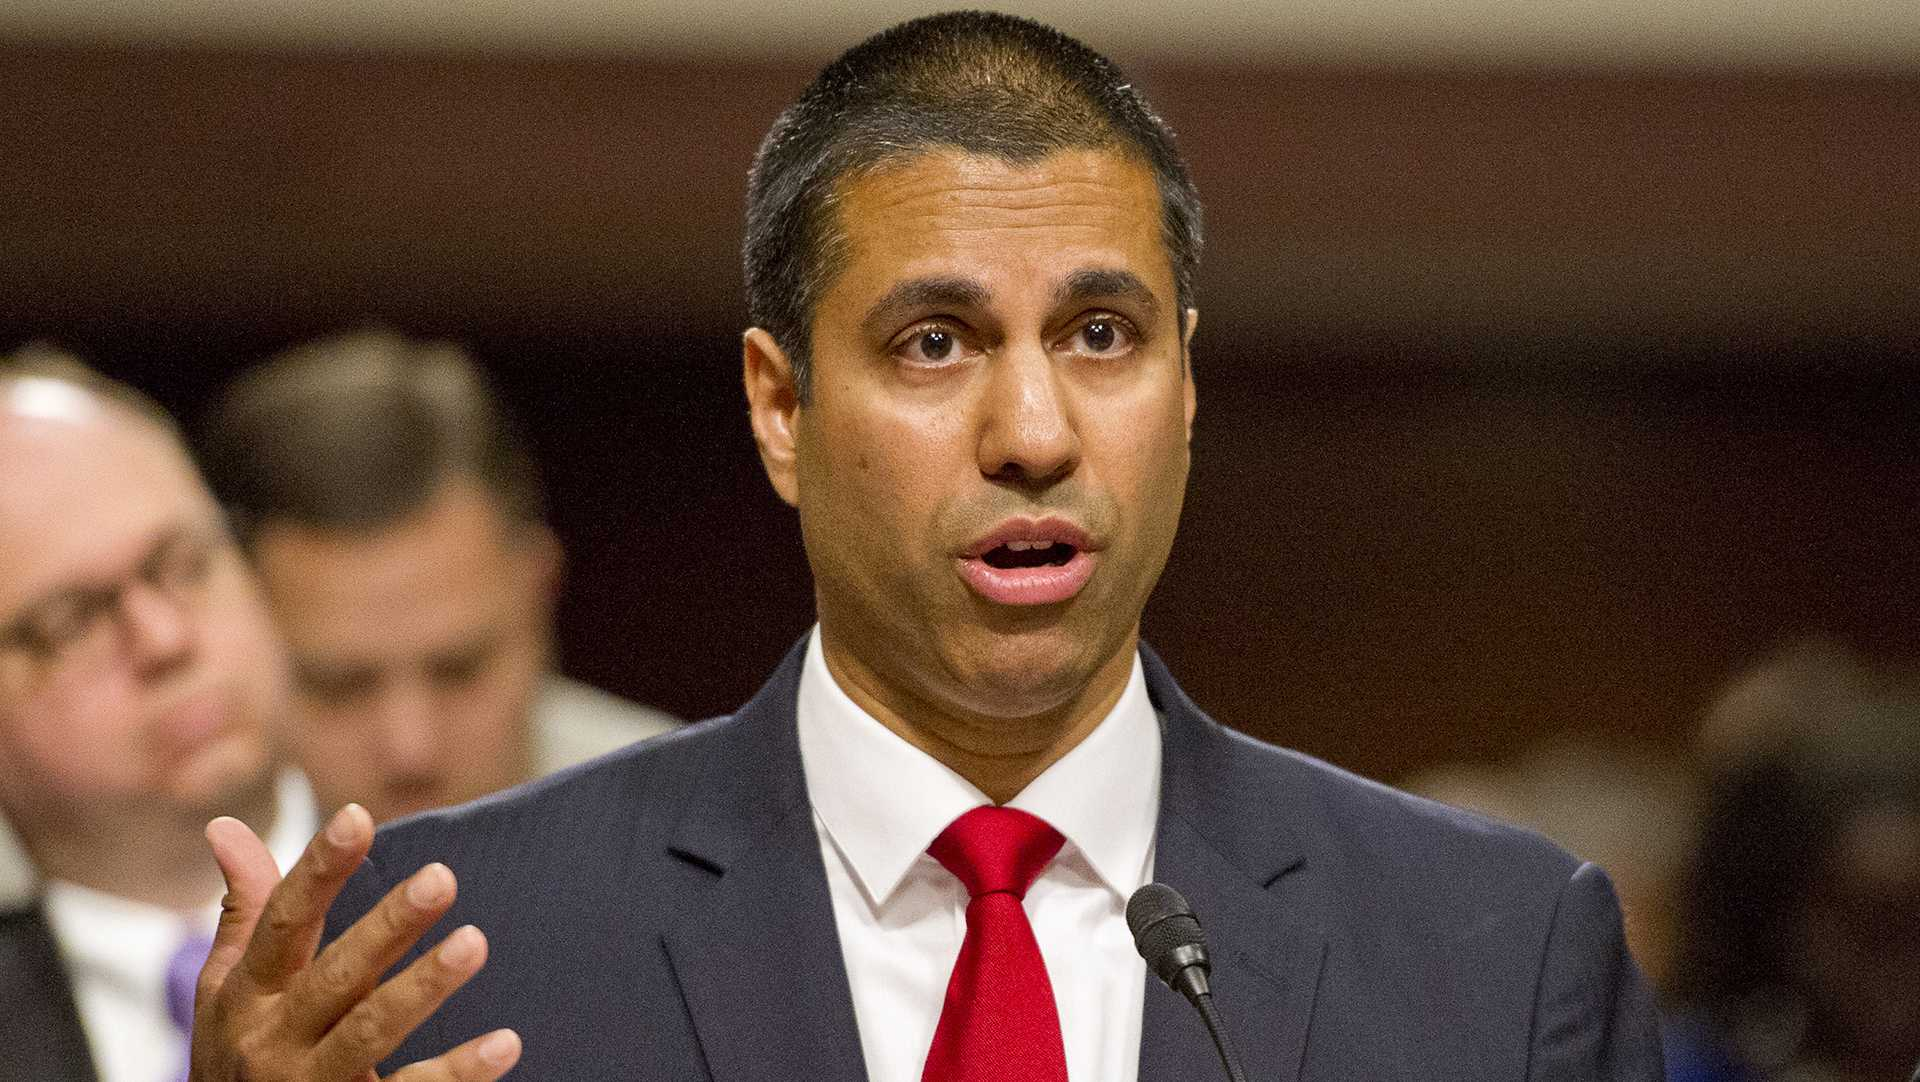 Federal Communications Commission Chairman Ajit Varadaraj Pai testifies on Wednesday, July 19, 2017 before the U.S. Senate Committee on Commerce, Science, and Transportation on Capitol Hill in Washington, D.C. (Ron Sachs/CNP/Zuma Press/TNS)